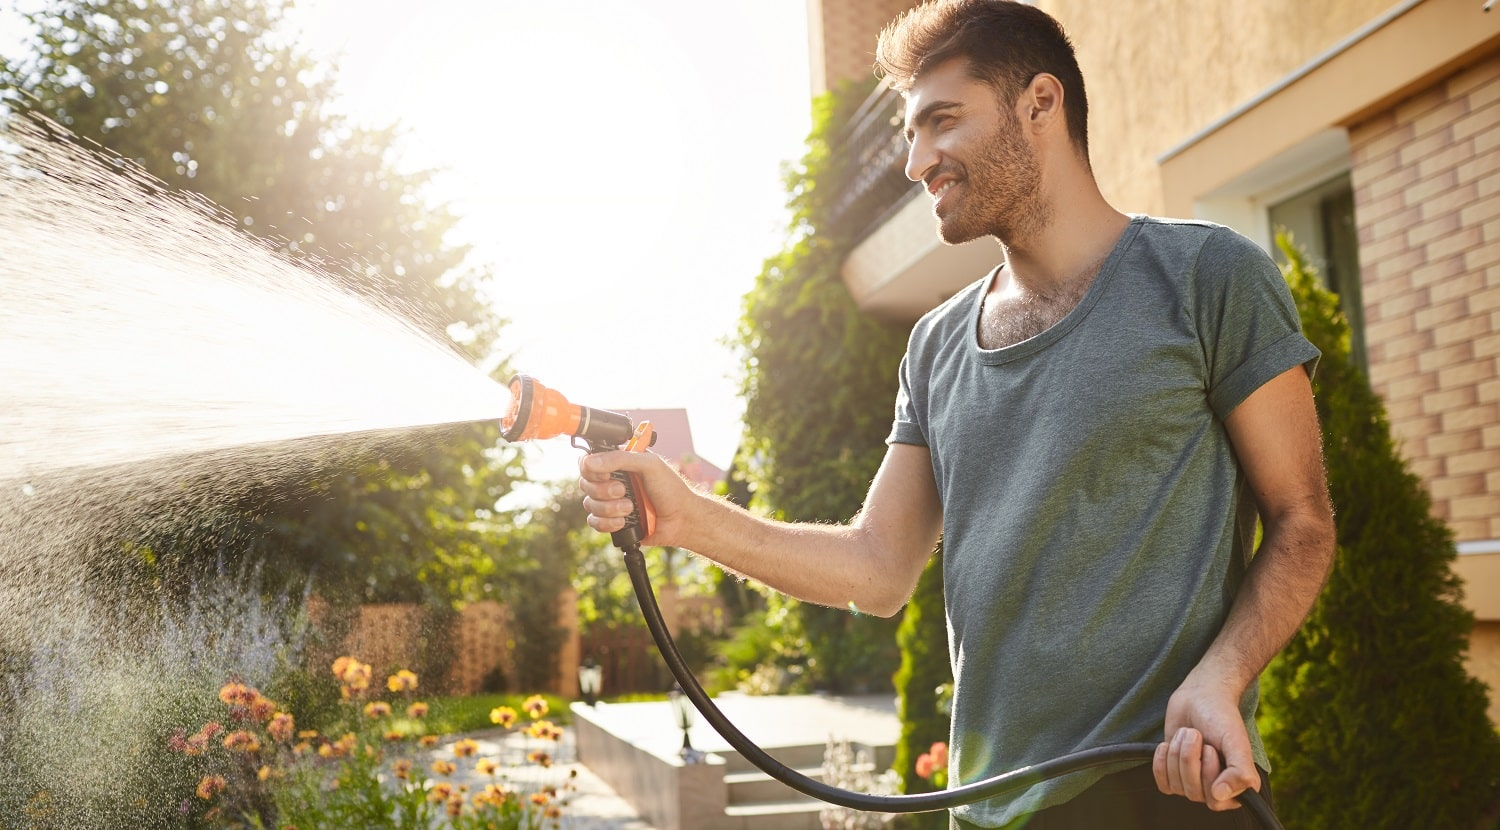 Summer morning in countryside house. Portrait of young attractive tan-skinned bearded man in blue t-shirt smiling, watering plants with hose, working in garden